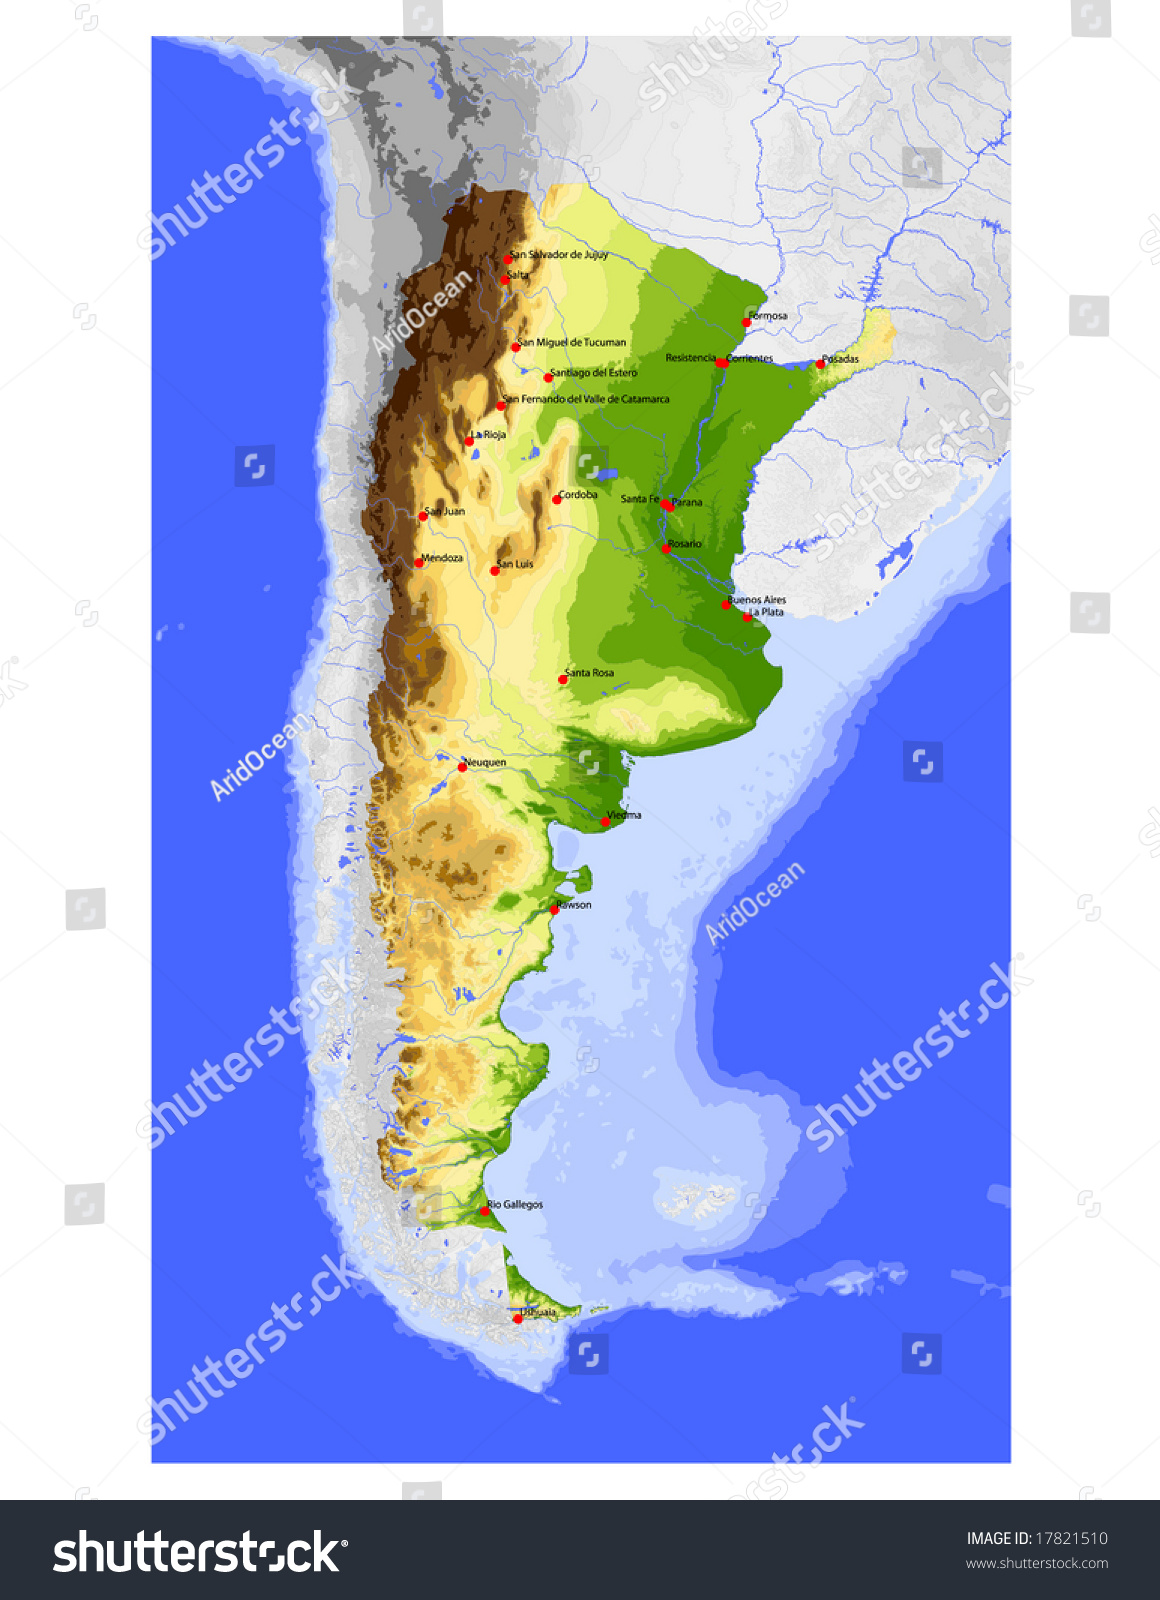 Argentina physical vector map colored according stock vector physical vector map colored according to elevation with rivers ocean depths gumiabroncs Image collections